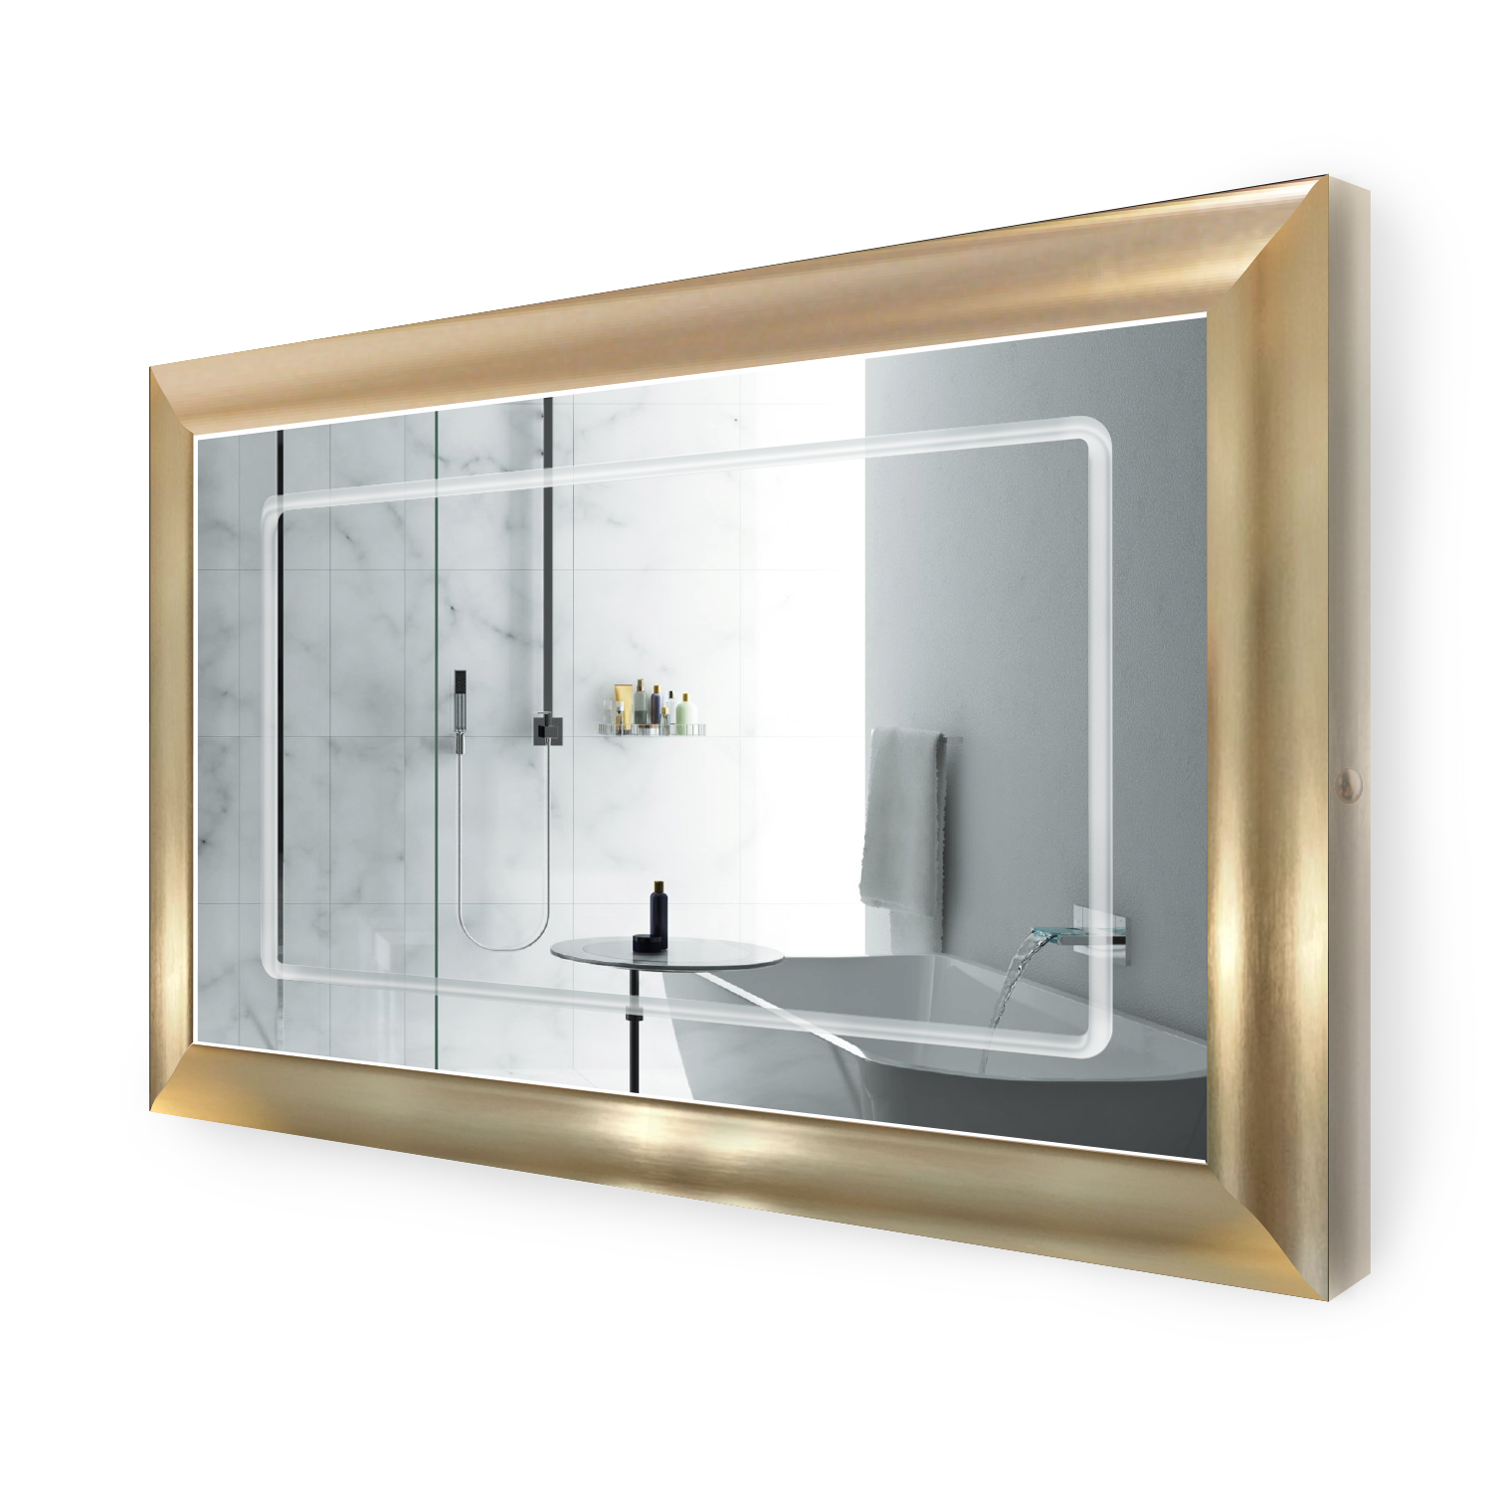 Lighted Bathroom Wall Mirror Large: LED Lighted 48 Inch X 30 Inch Bathroom Gold Frame Mirror